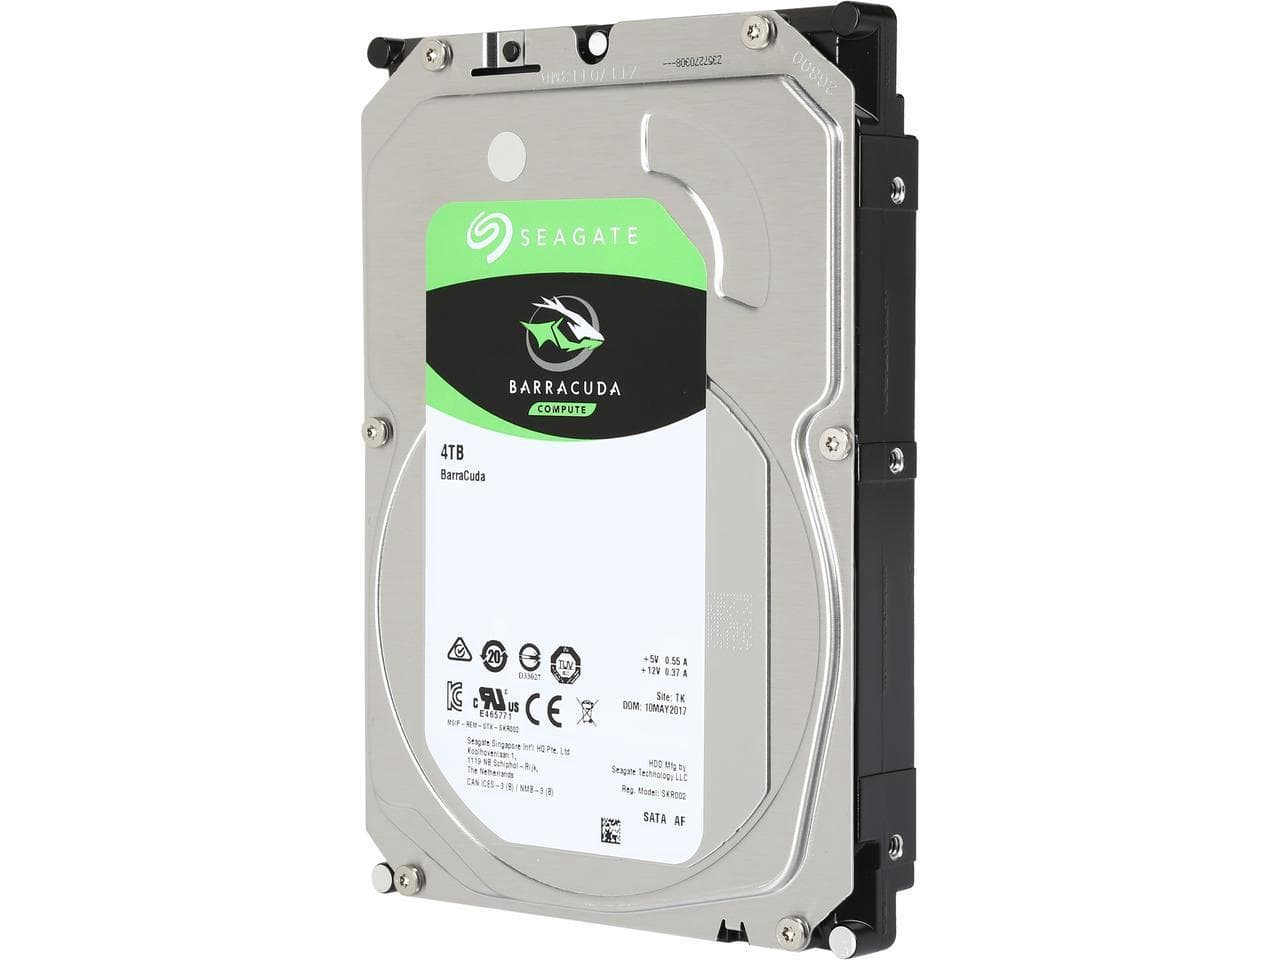 "Seagate BarraCuda ST4000DM004 4TB 256MB Cache SATA 6.0Gb/s 3.5"" Hard Drives $89.99"